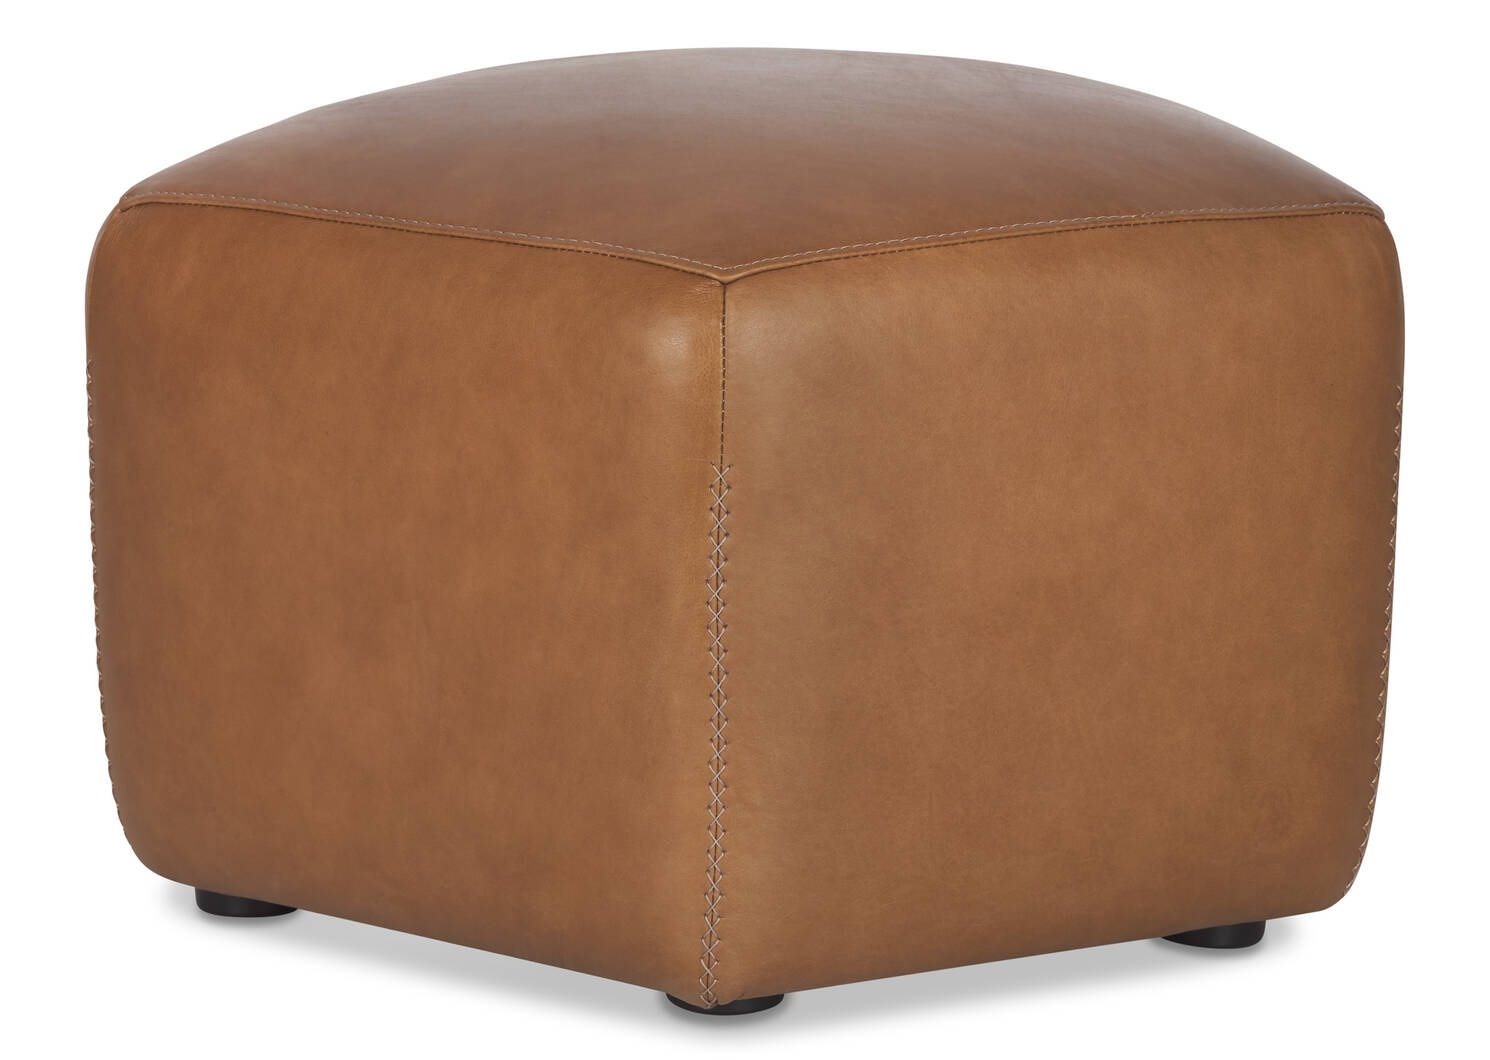 Myers Leather Ottoman -Adler Tan